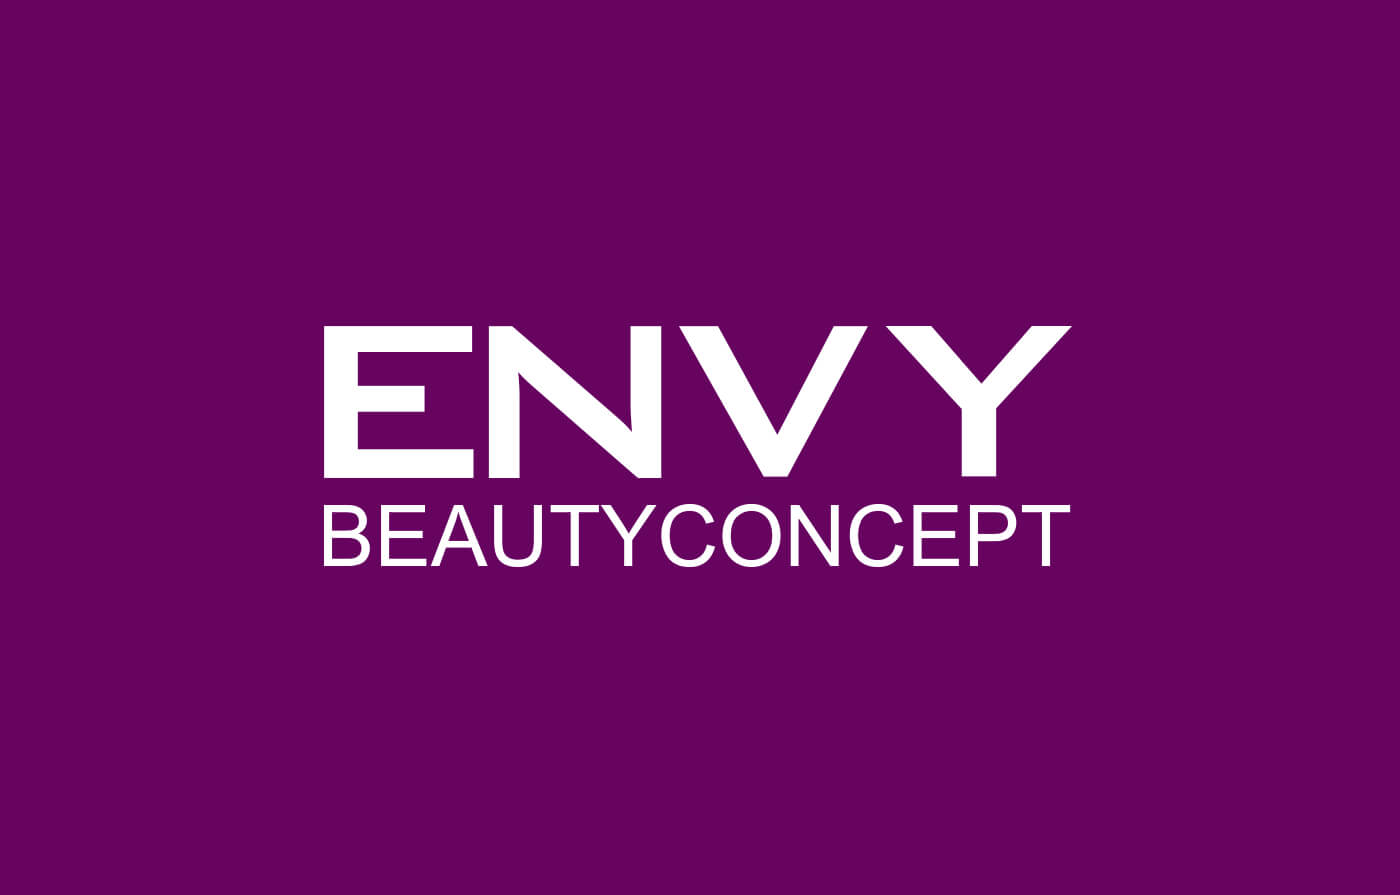 2010 Envy Beauty Concept logo